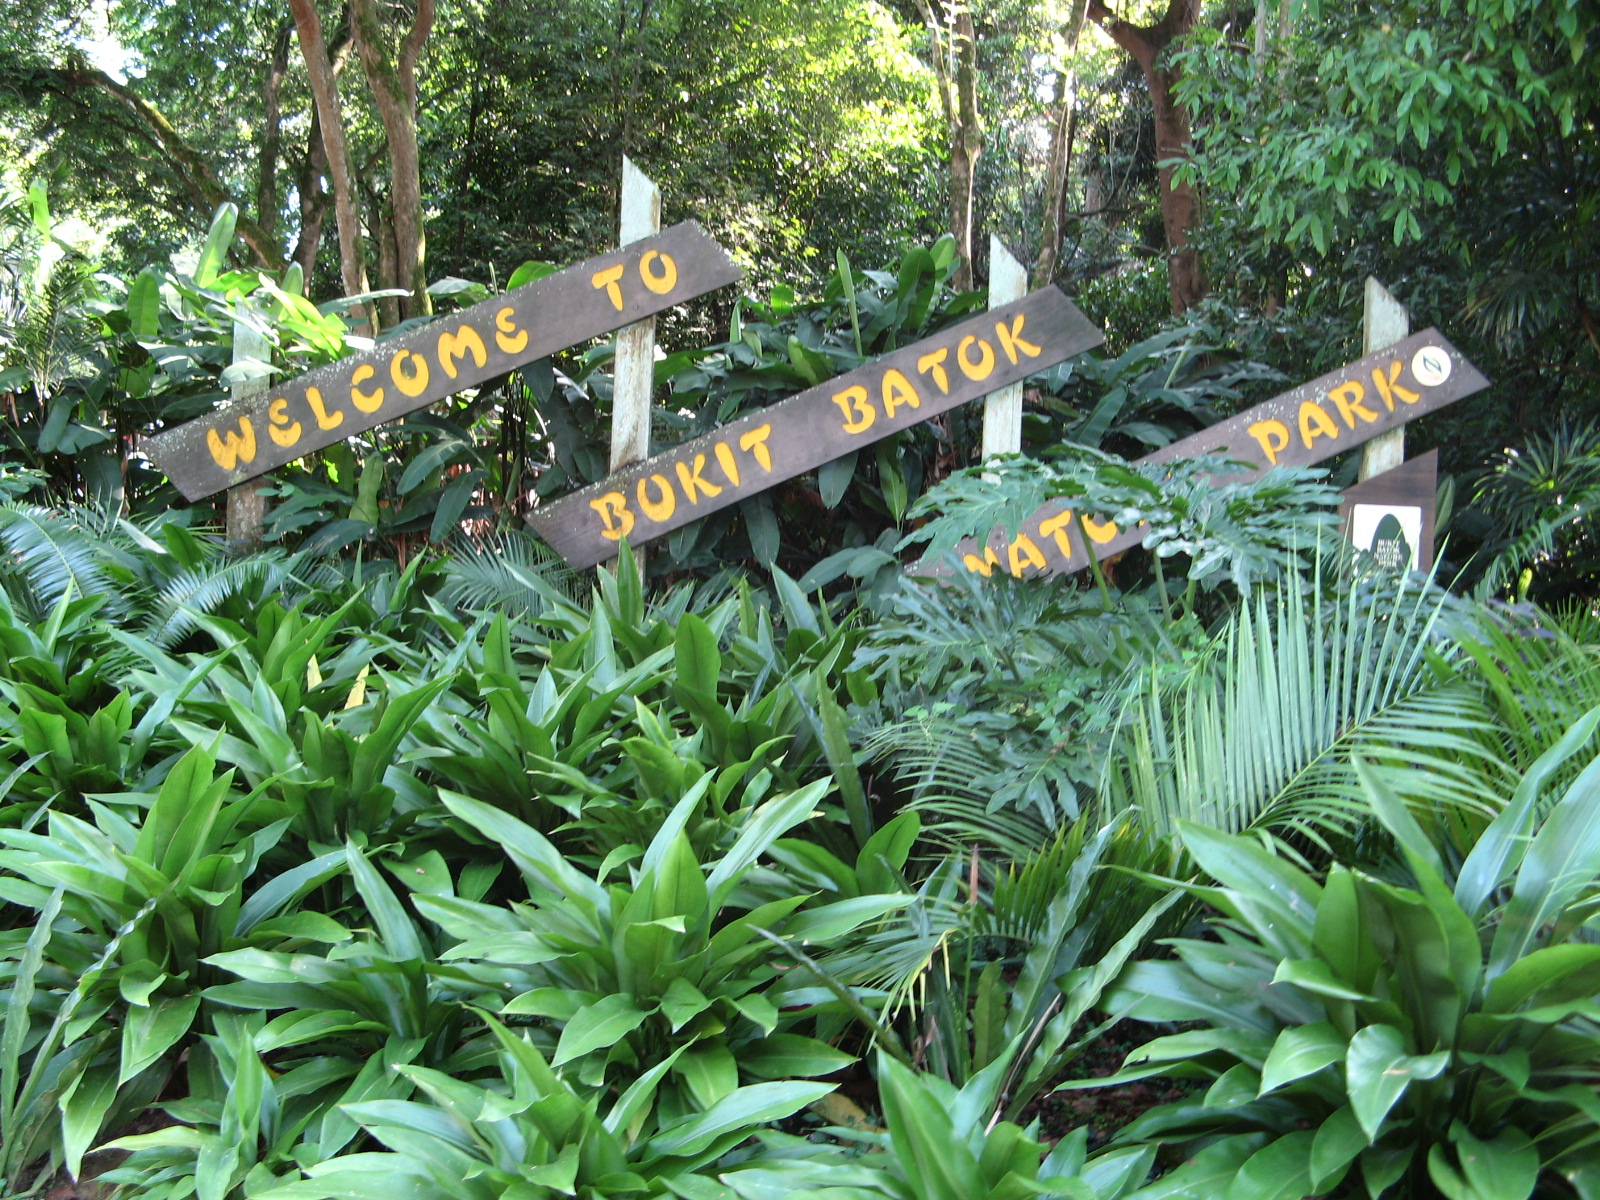 bukit batok nature park how to get there